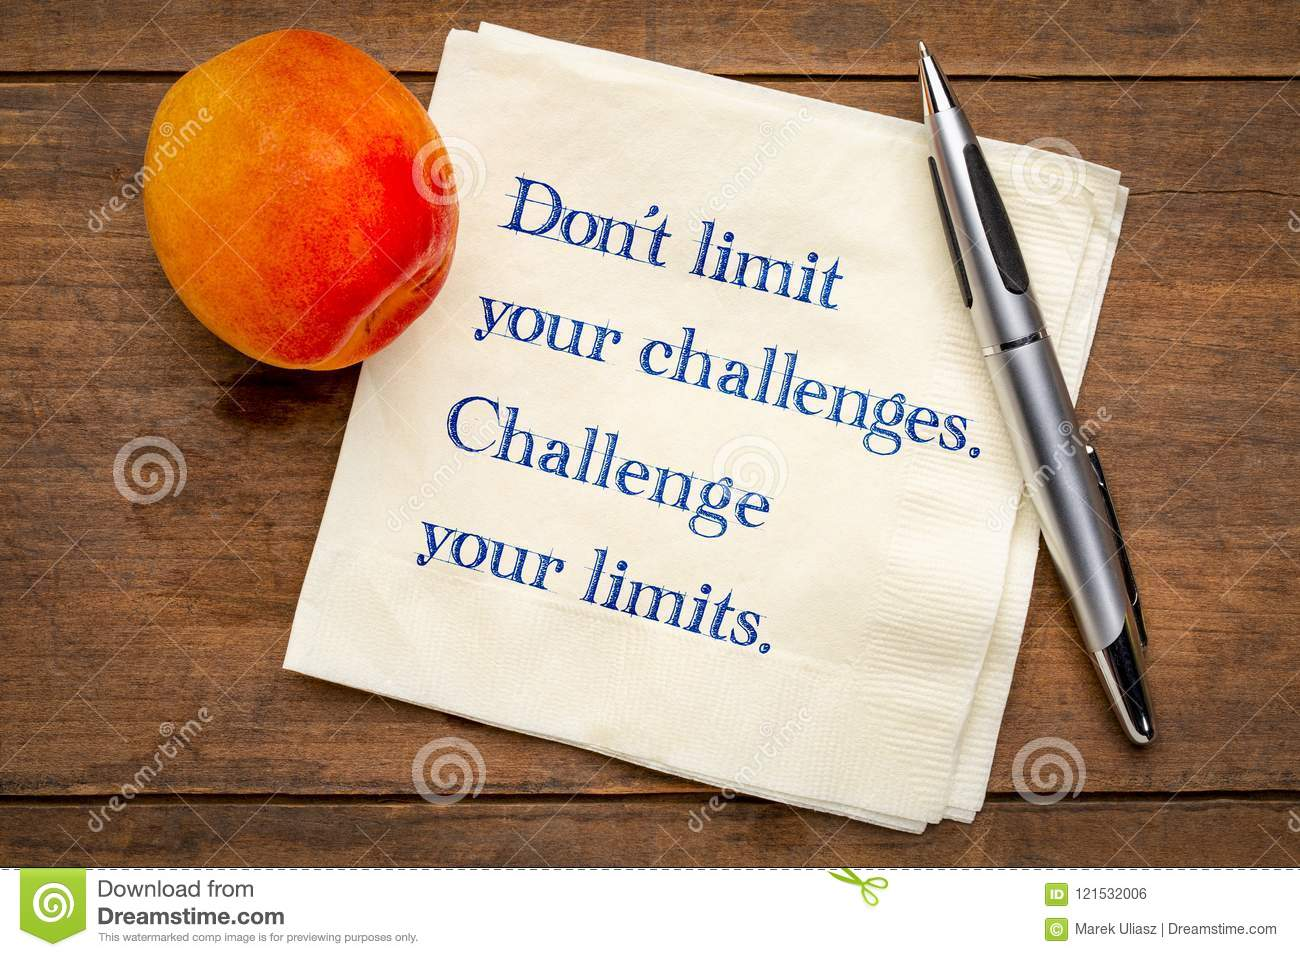 Do not limit your challenges.